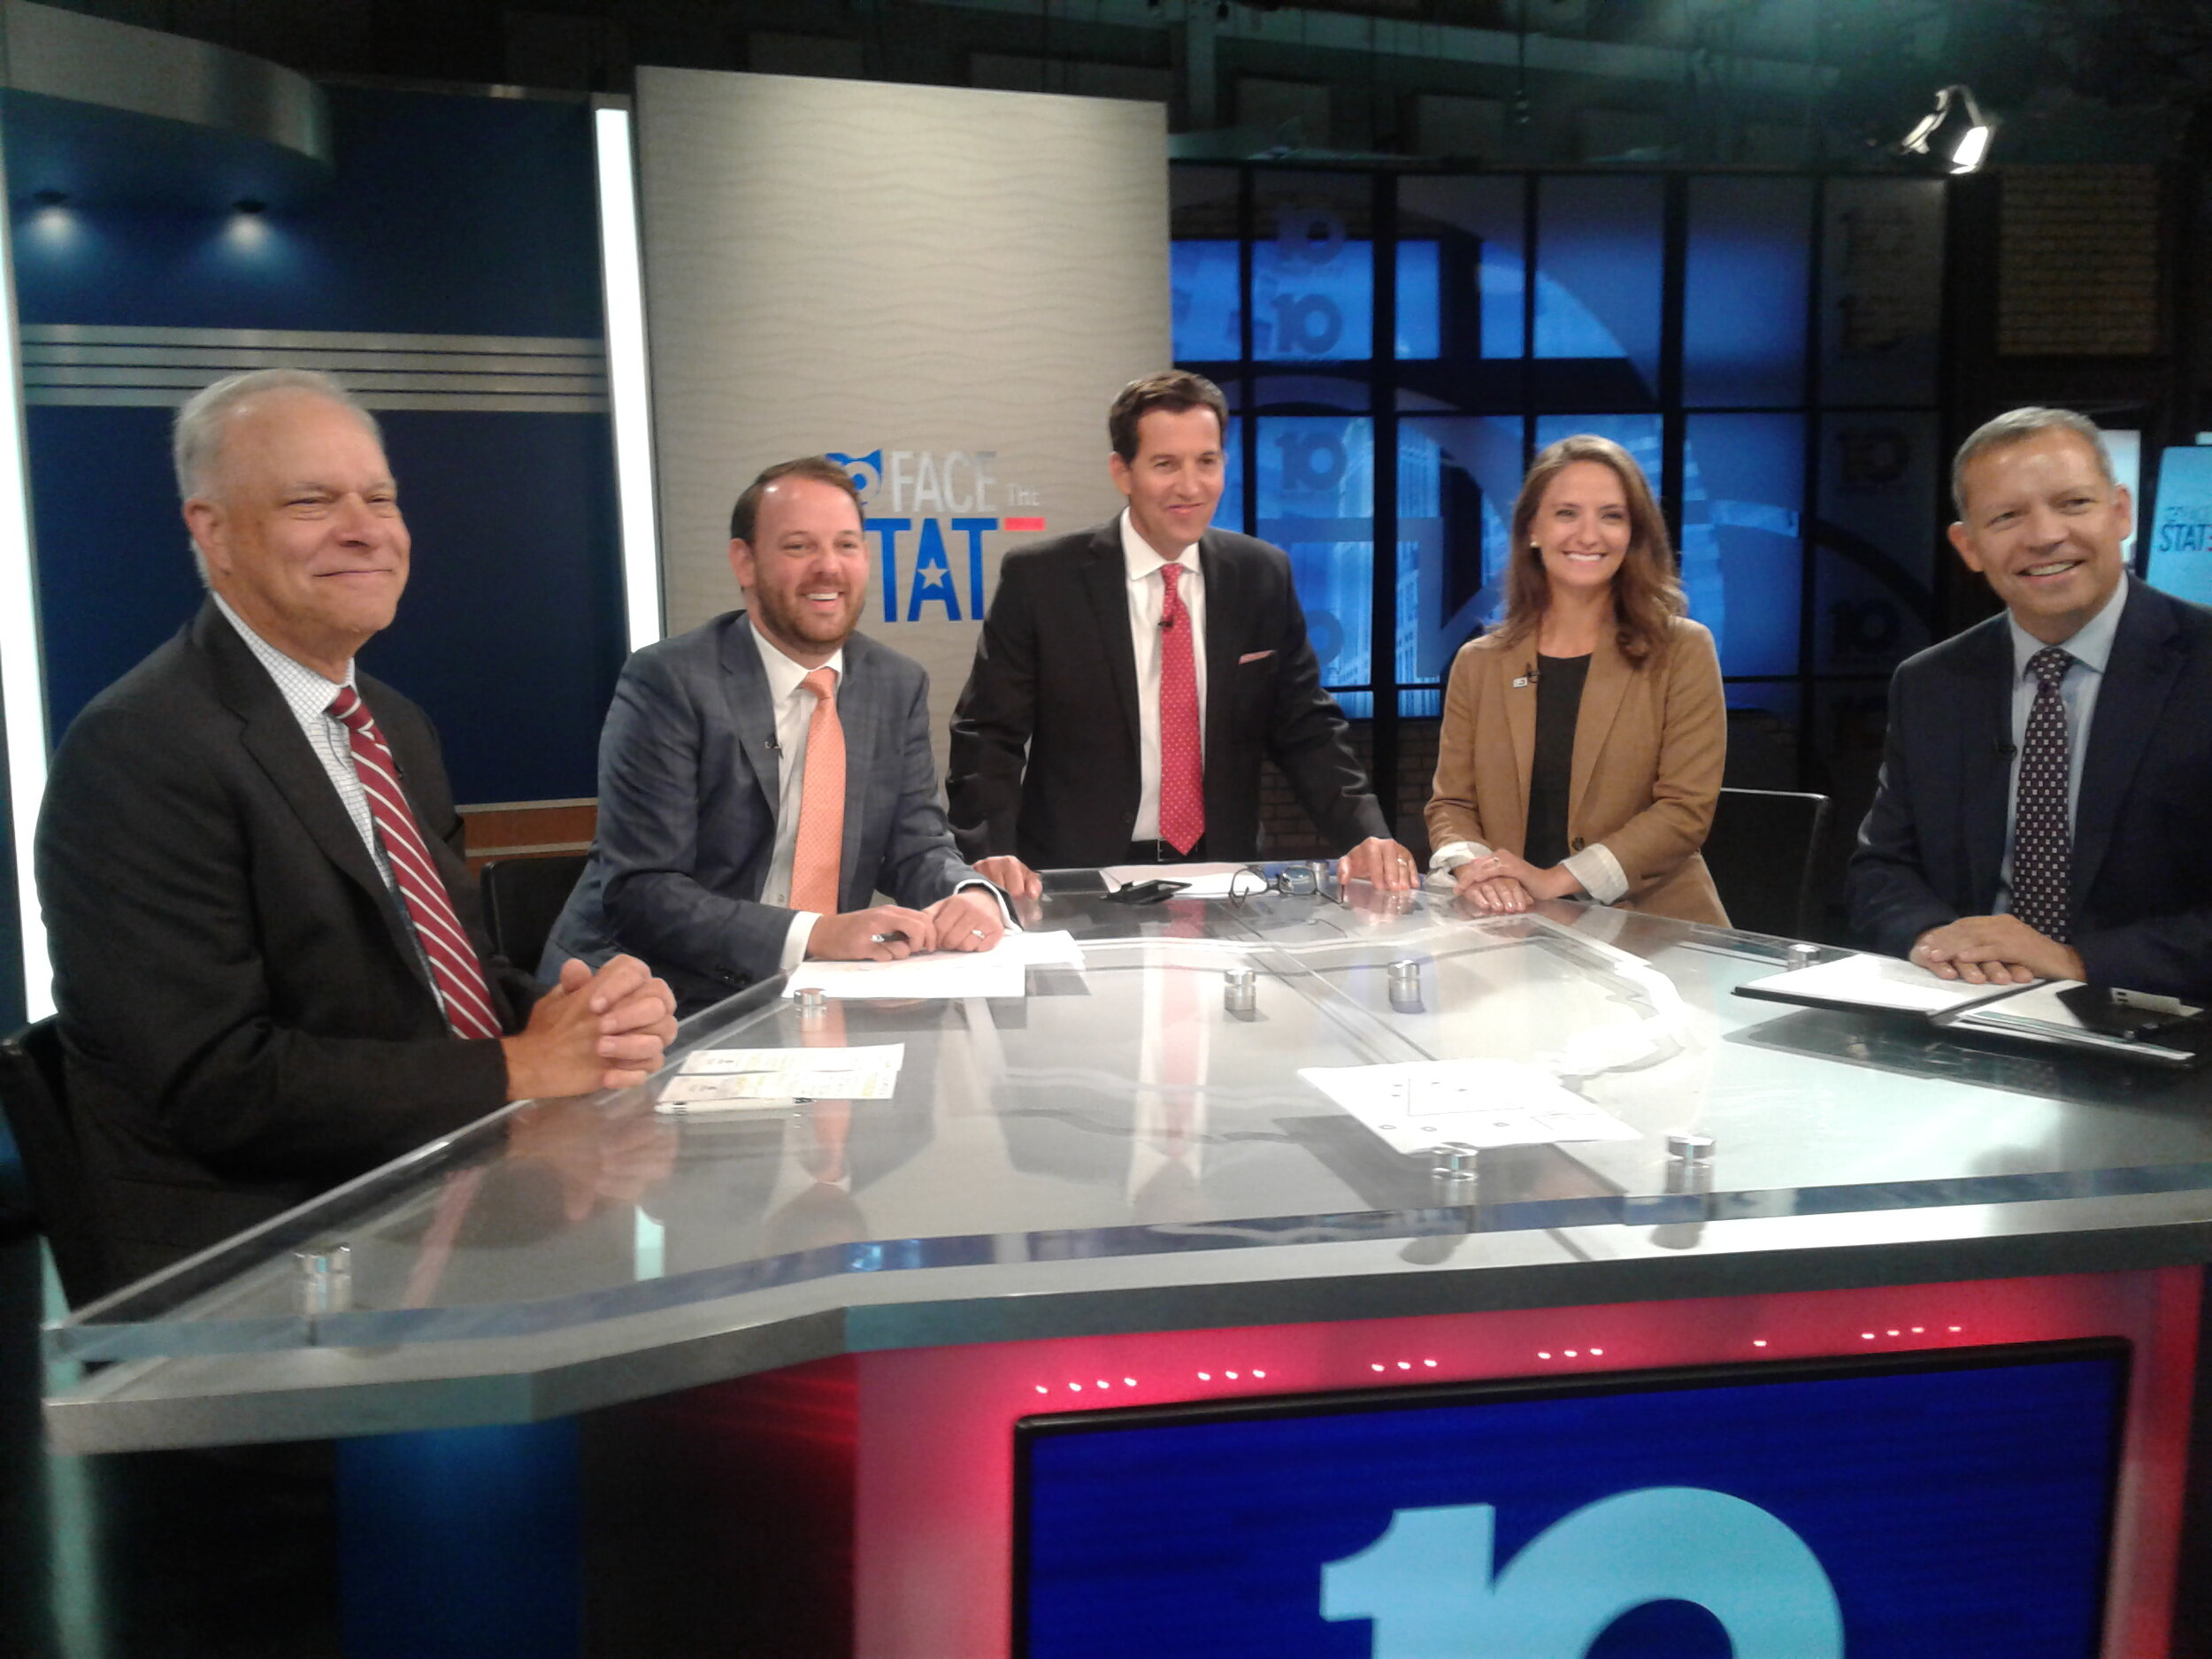 'Face the State' host Scott Light, center, was joined at 10TV studios by, left to right, Bruce Luecke, Brent Swander, Christina Muryn and Scott DiMauro.